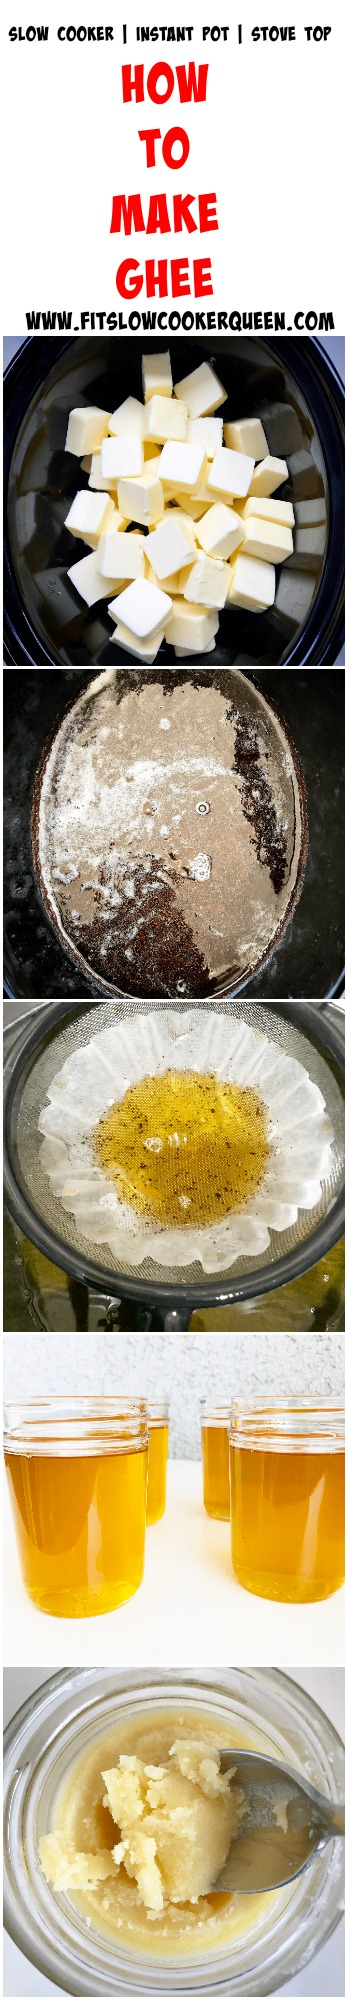 another pinterest pin for Slow Cooker_Instant Pot Ghee (Low-Carb, Paleo, Whole30)